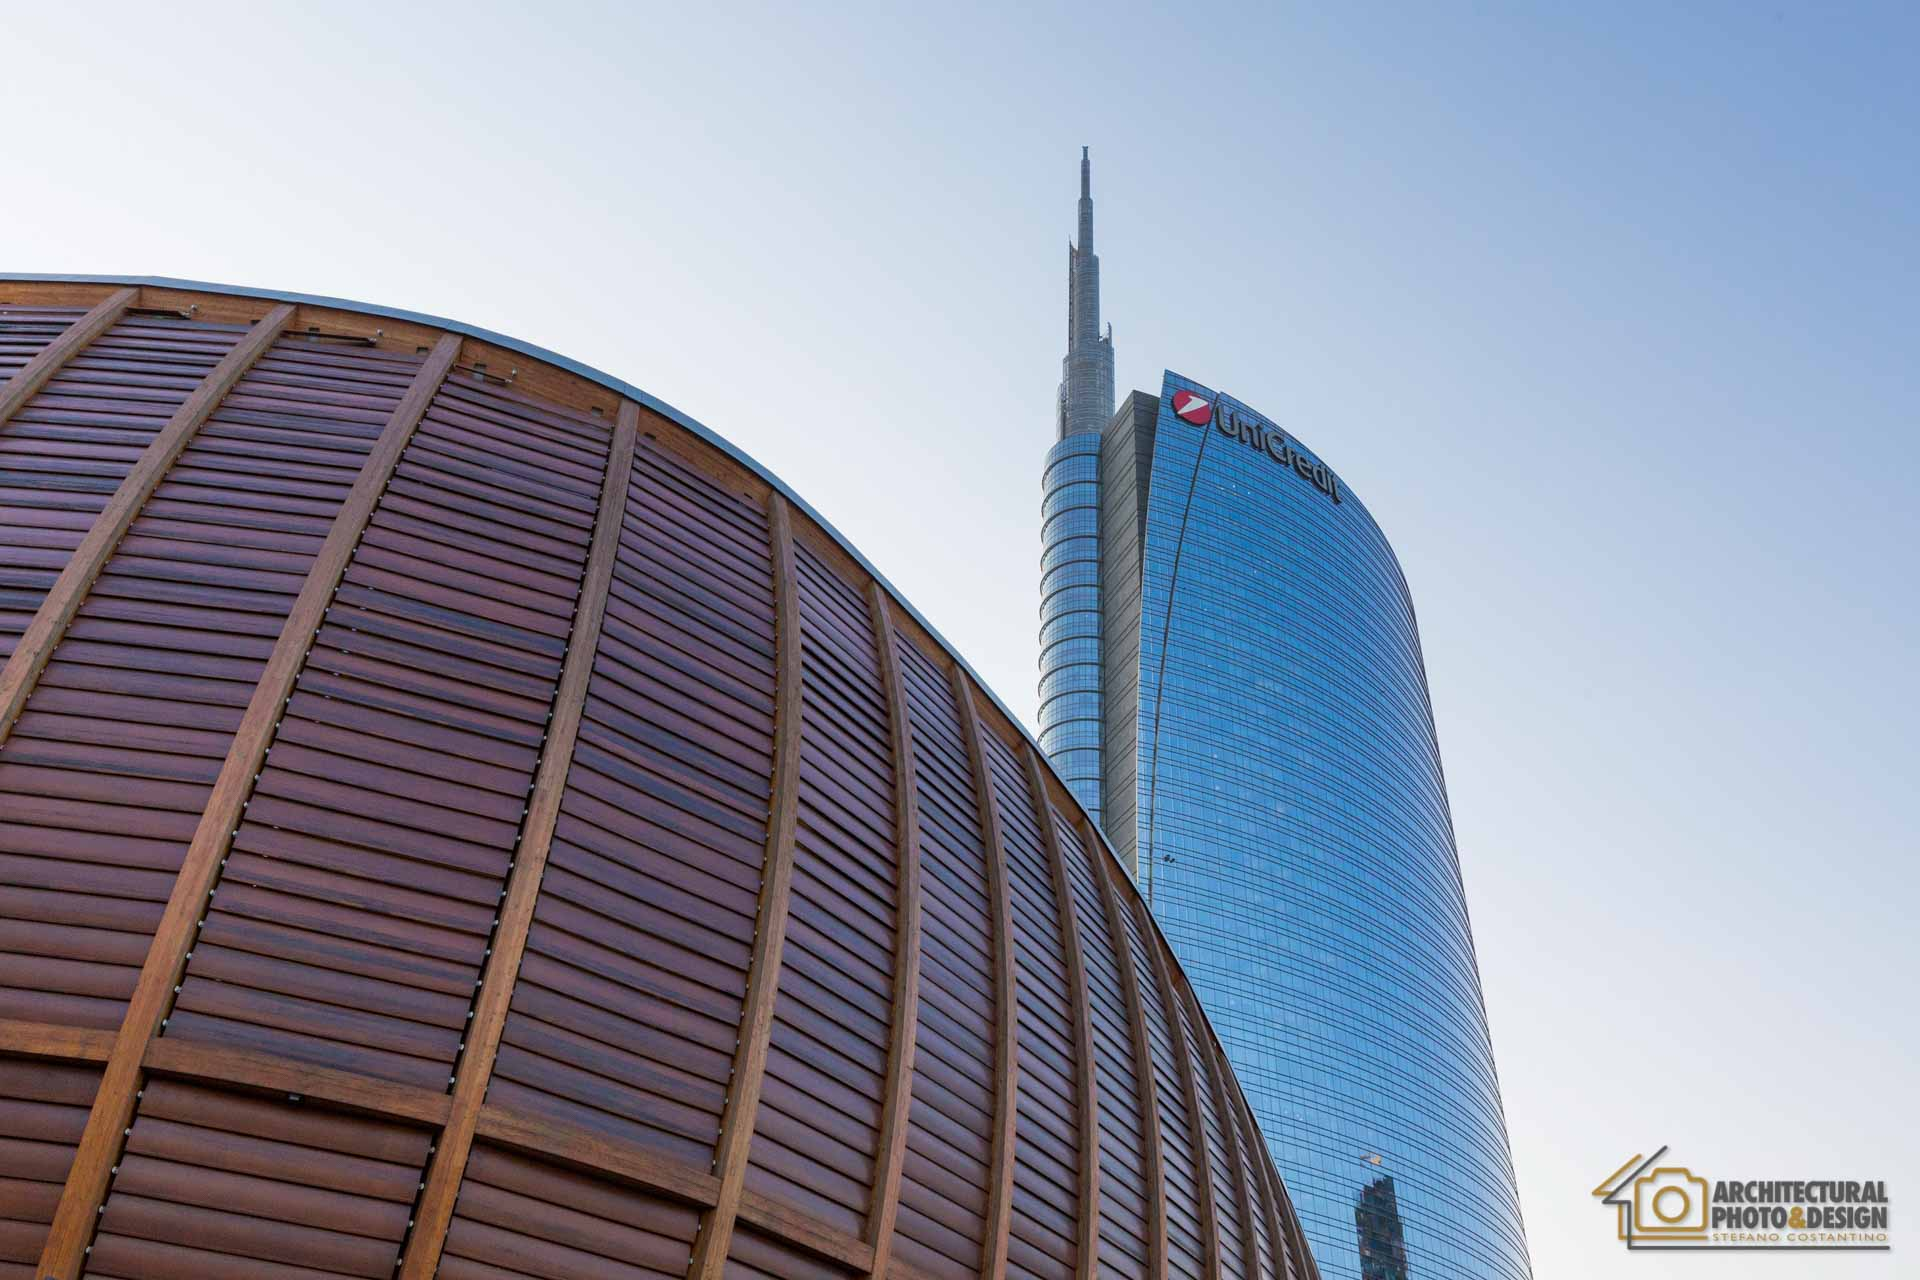 Torre UniCredit